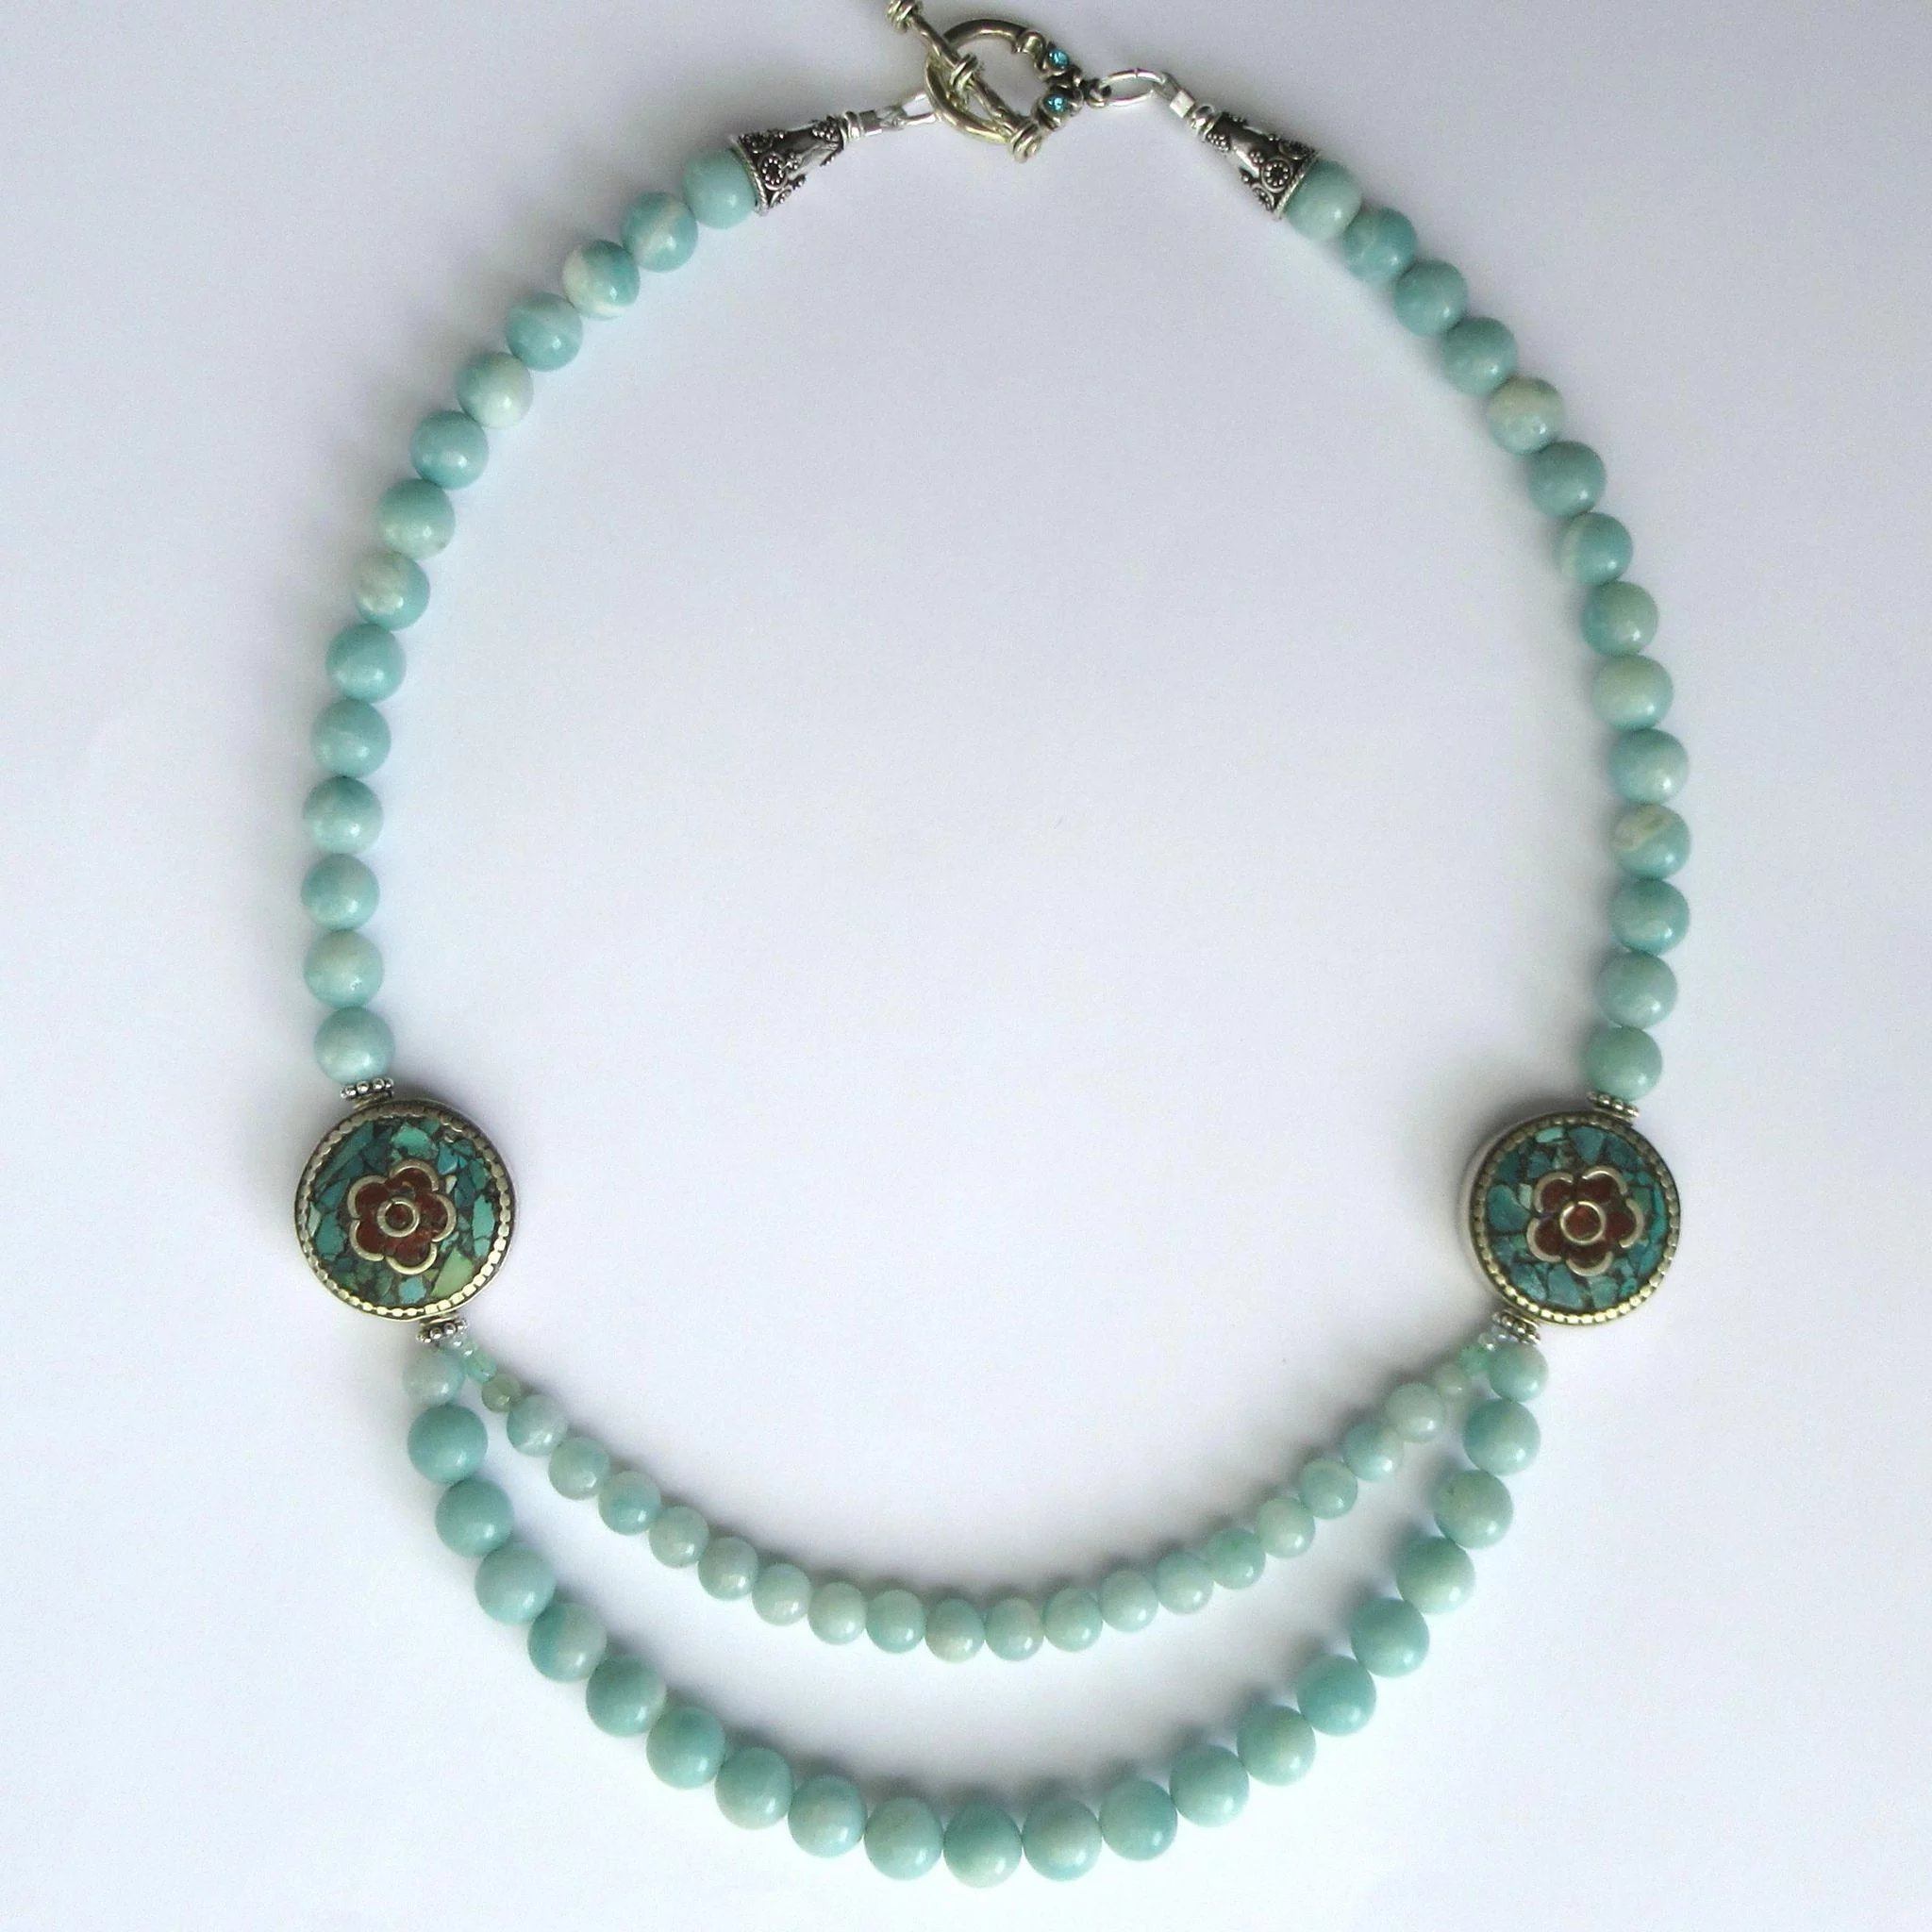 handmade business promotion jewelry mala necklaces businesses rose small beaded support beads knotted quartz amazonite pin knots crafts ideas necklace